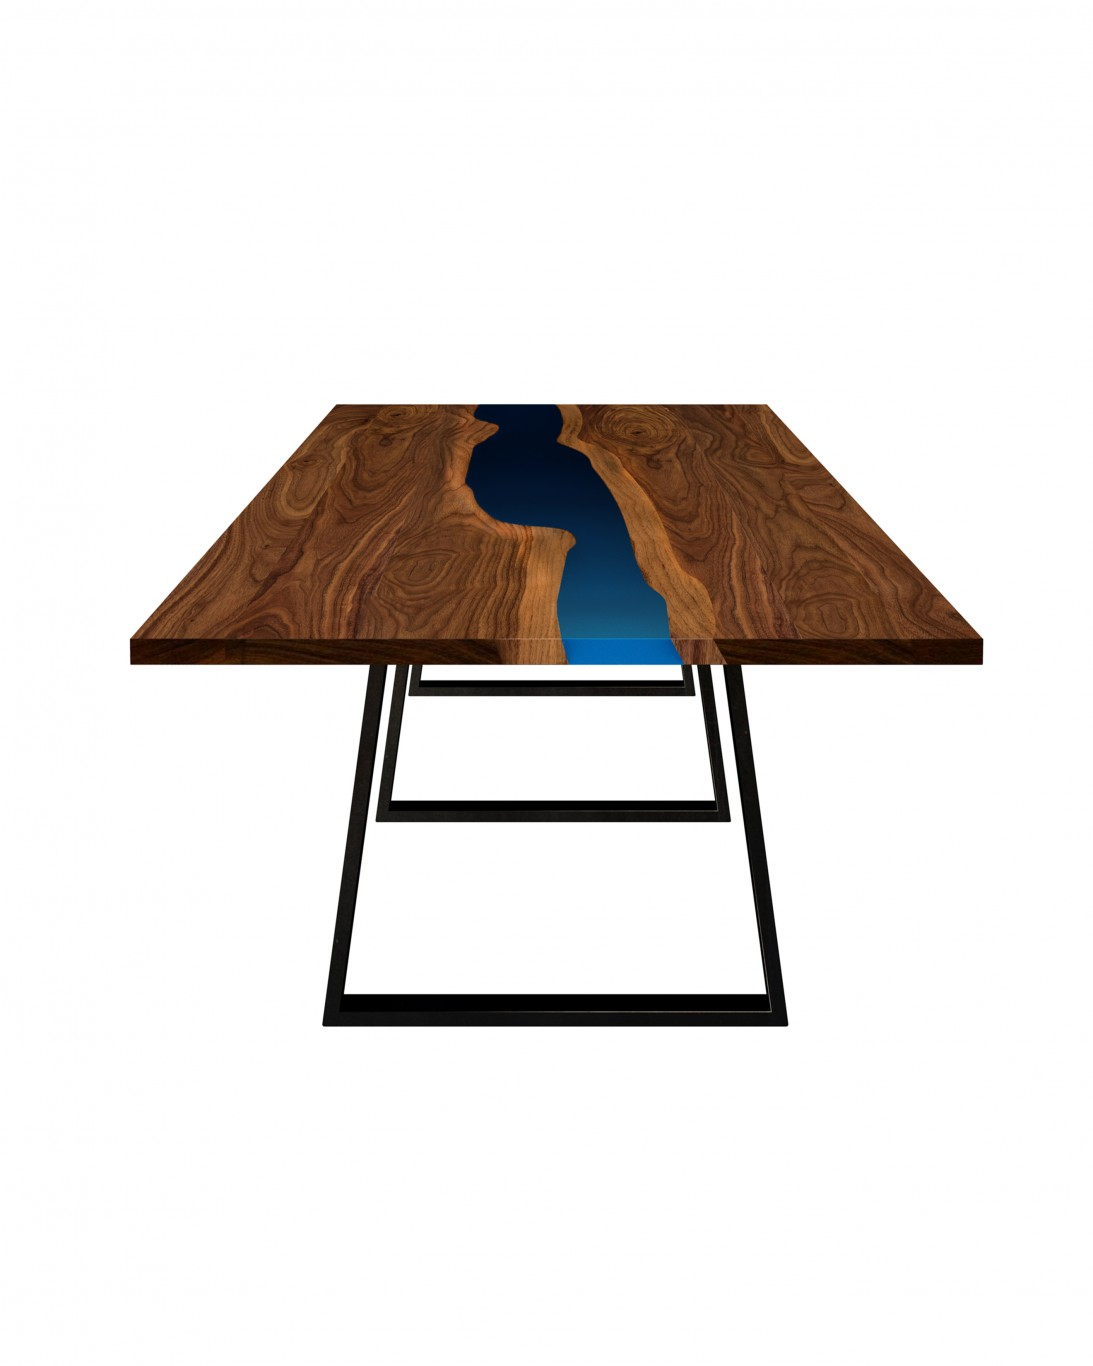 Custom River table front view